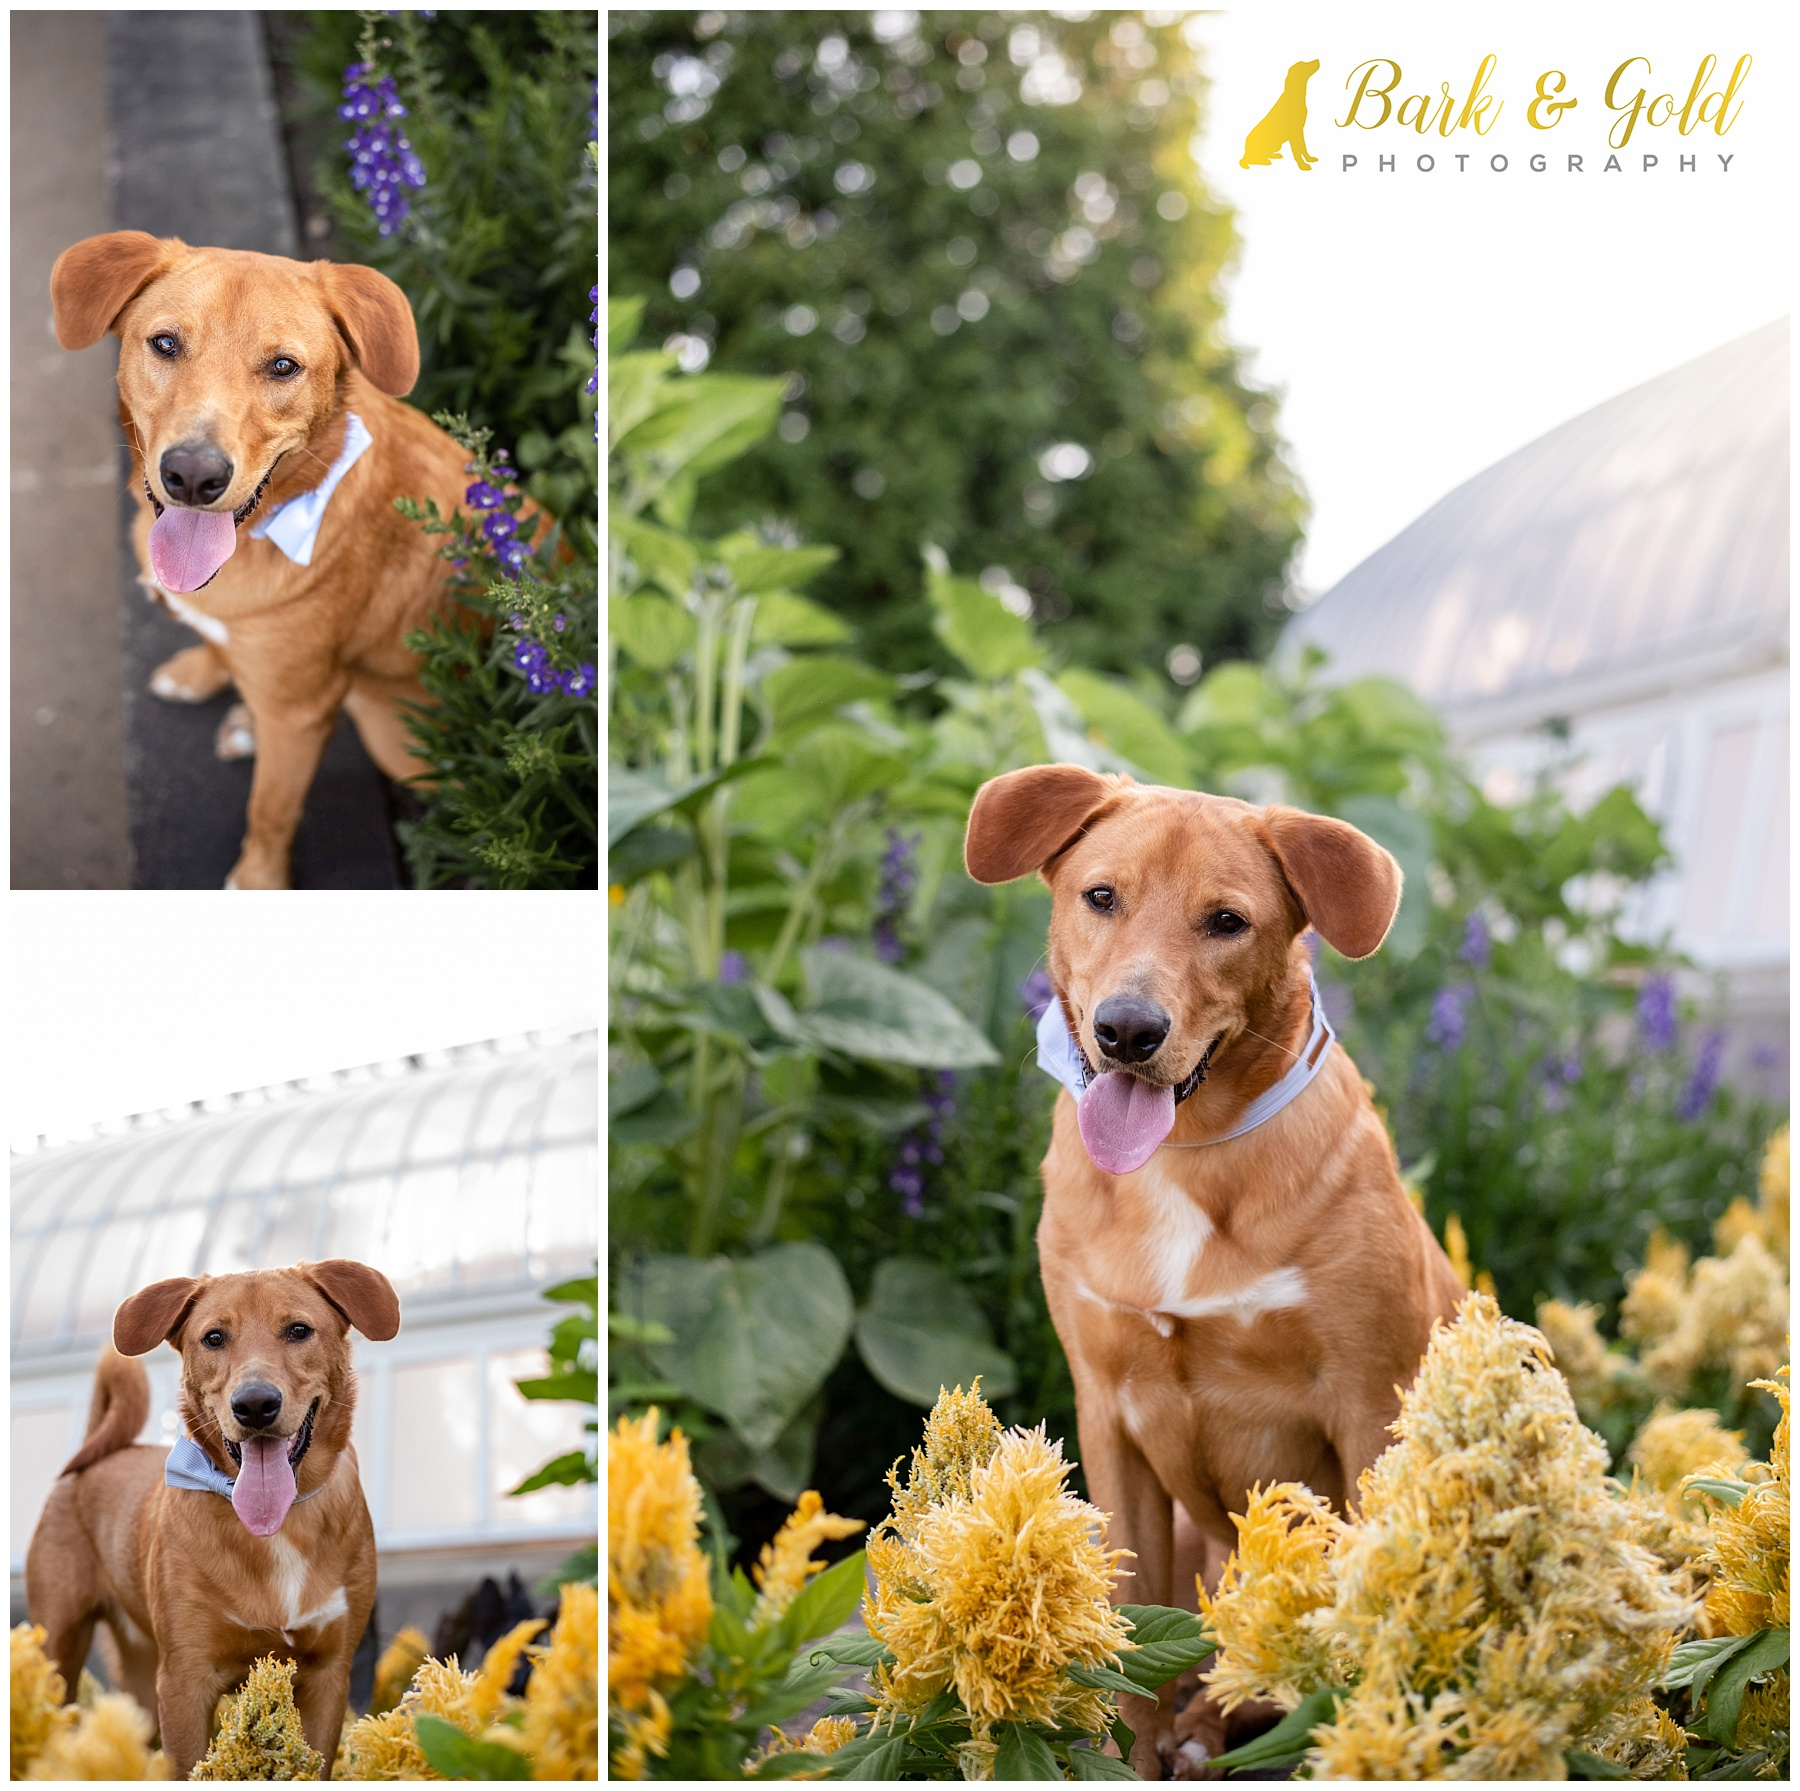 Brown mixed breed dog among flowers at Phipps Conservatory